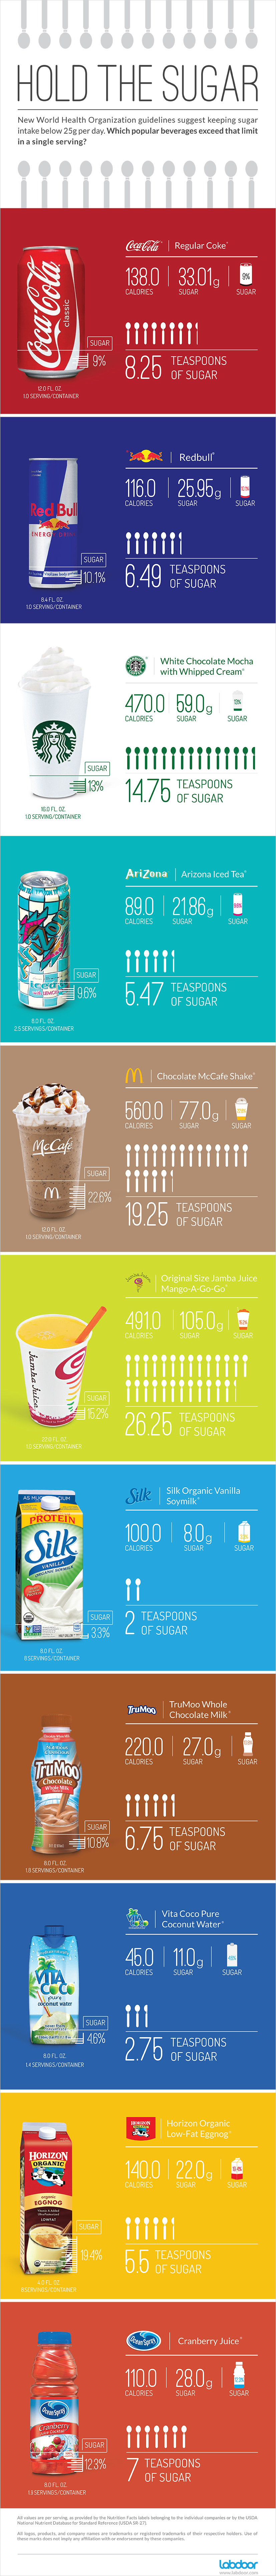 Sugar content of popular beverages